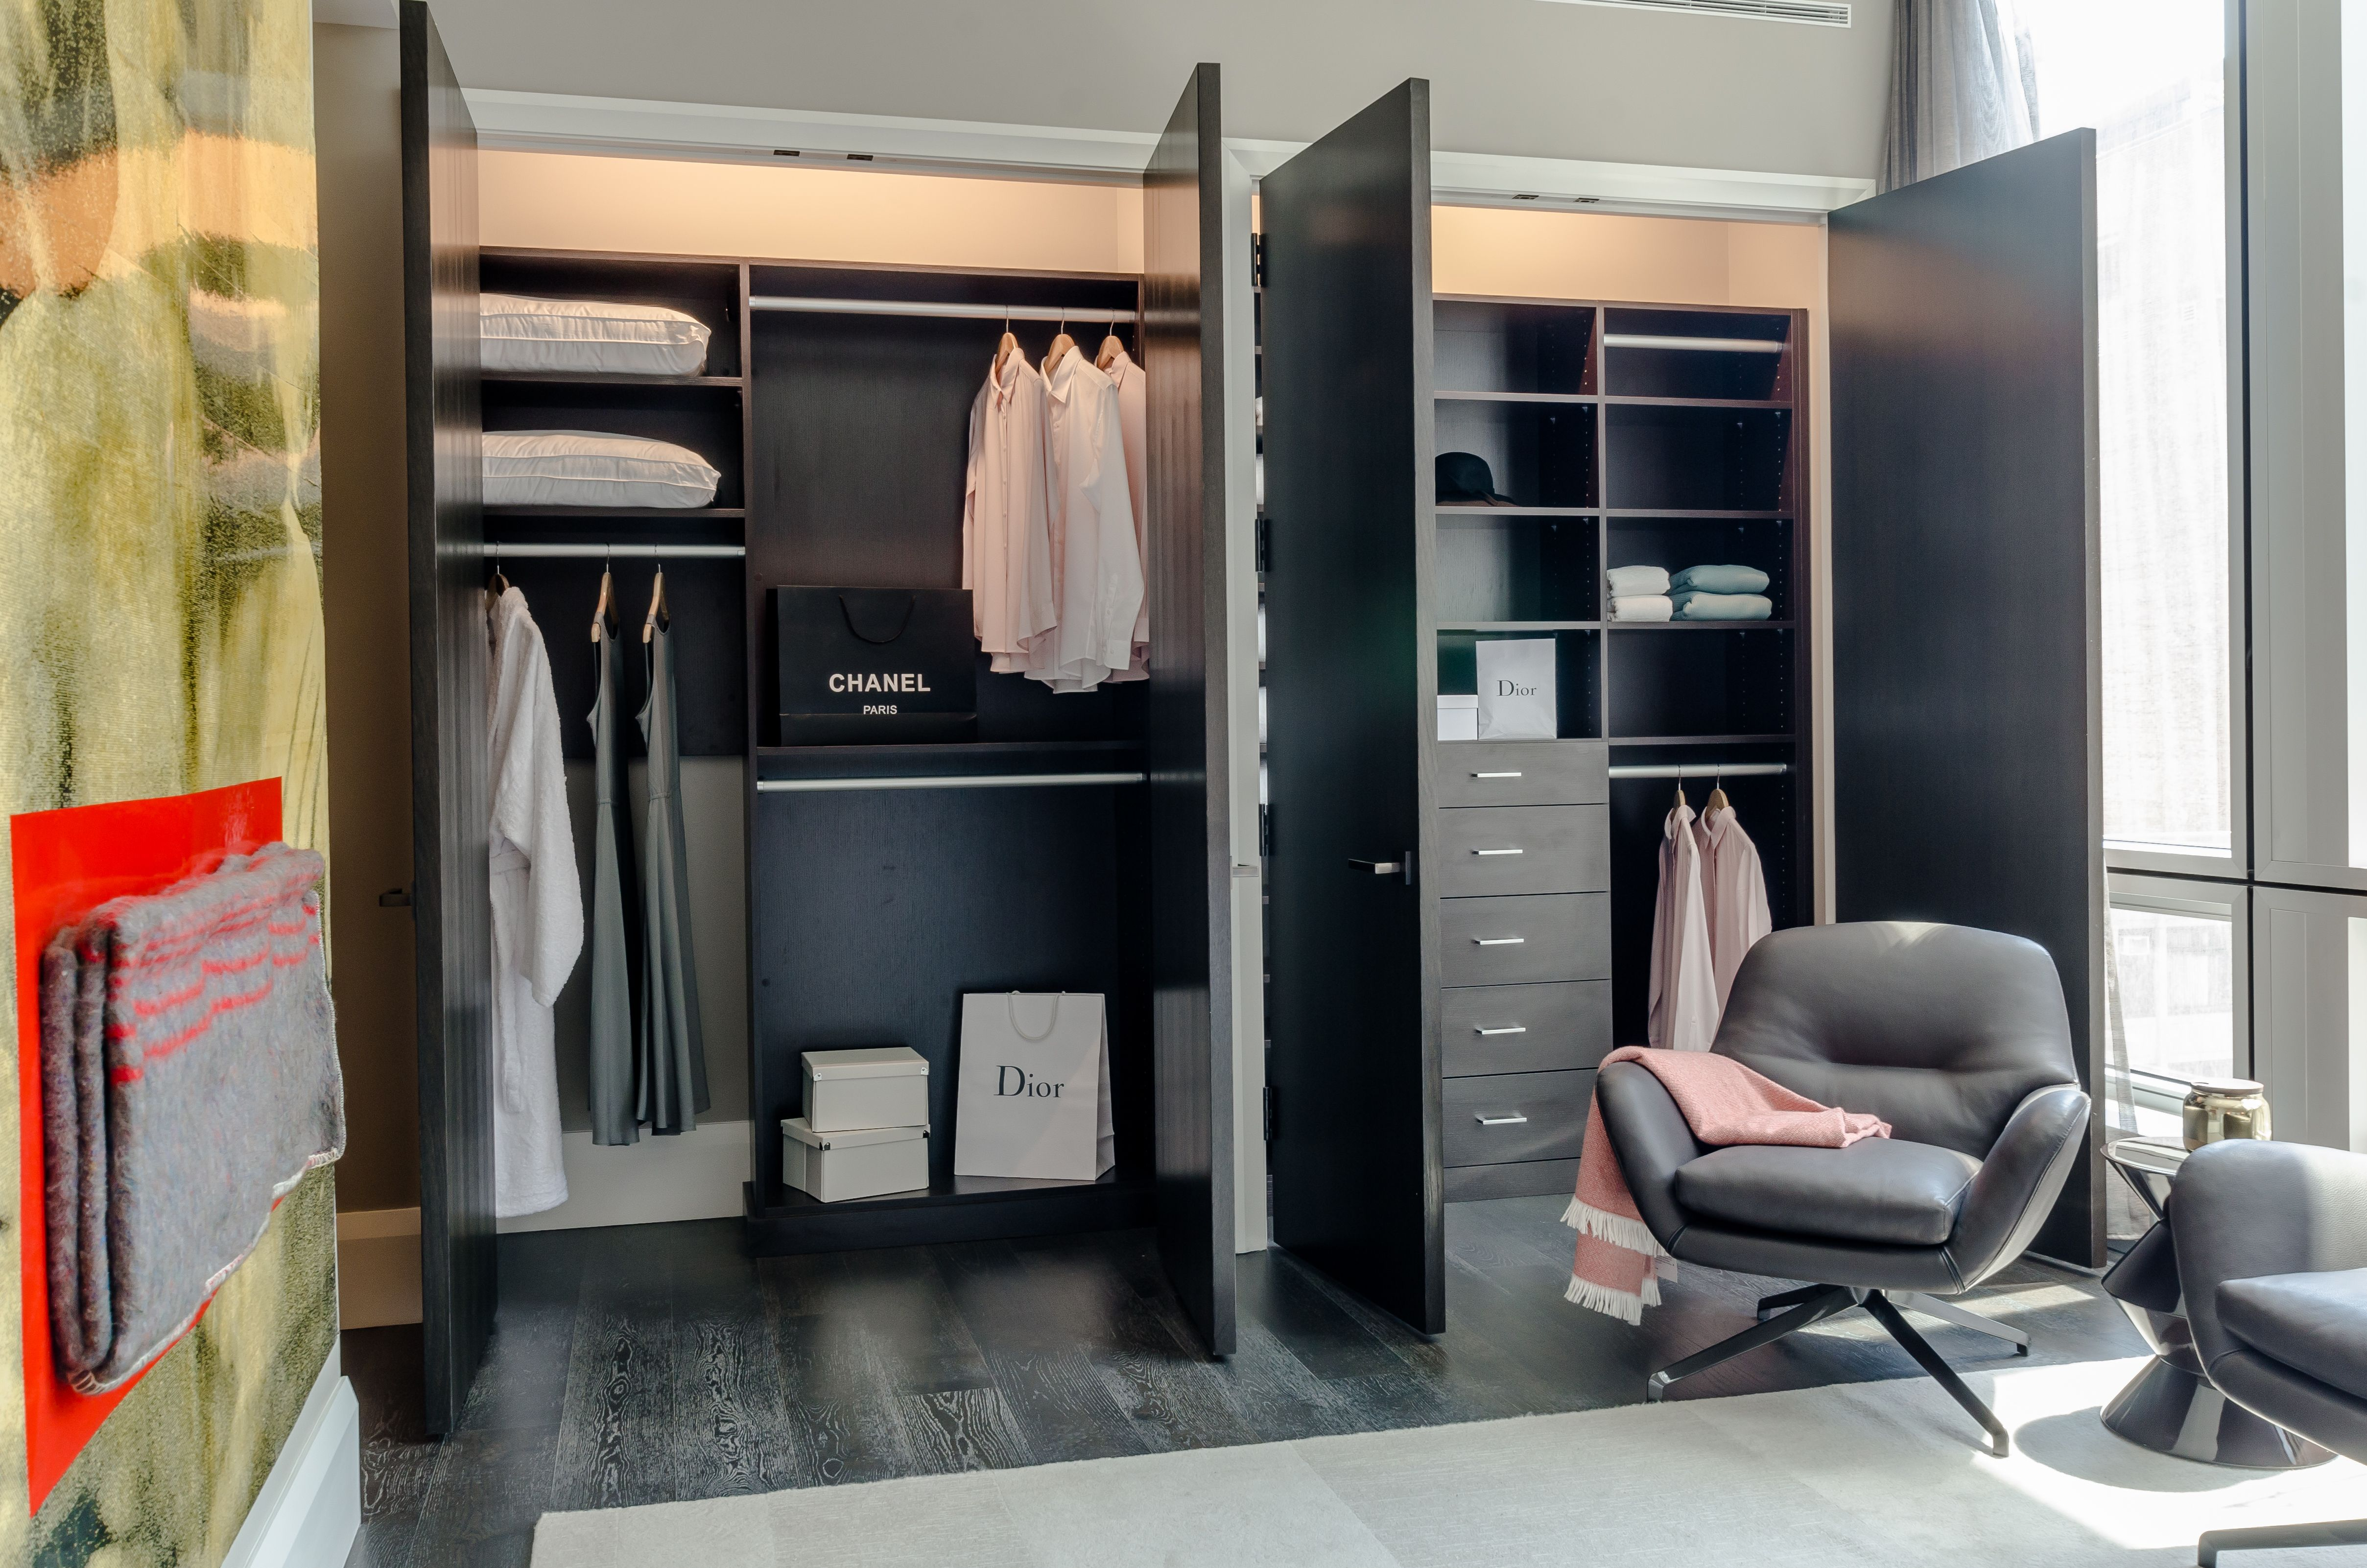 and murphy size california office closets by ideas home furniture for style solutions best shocking xfile storage closet howexgirlbackcom bed nyc trends u mattress custom the